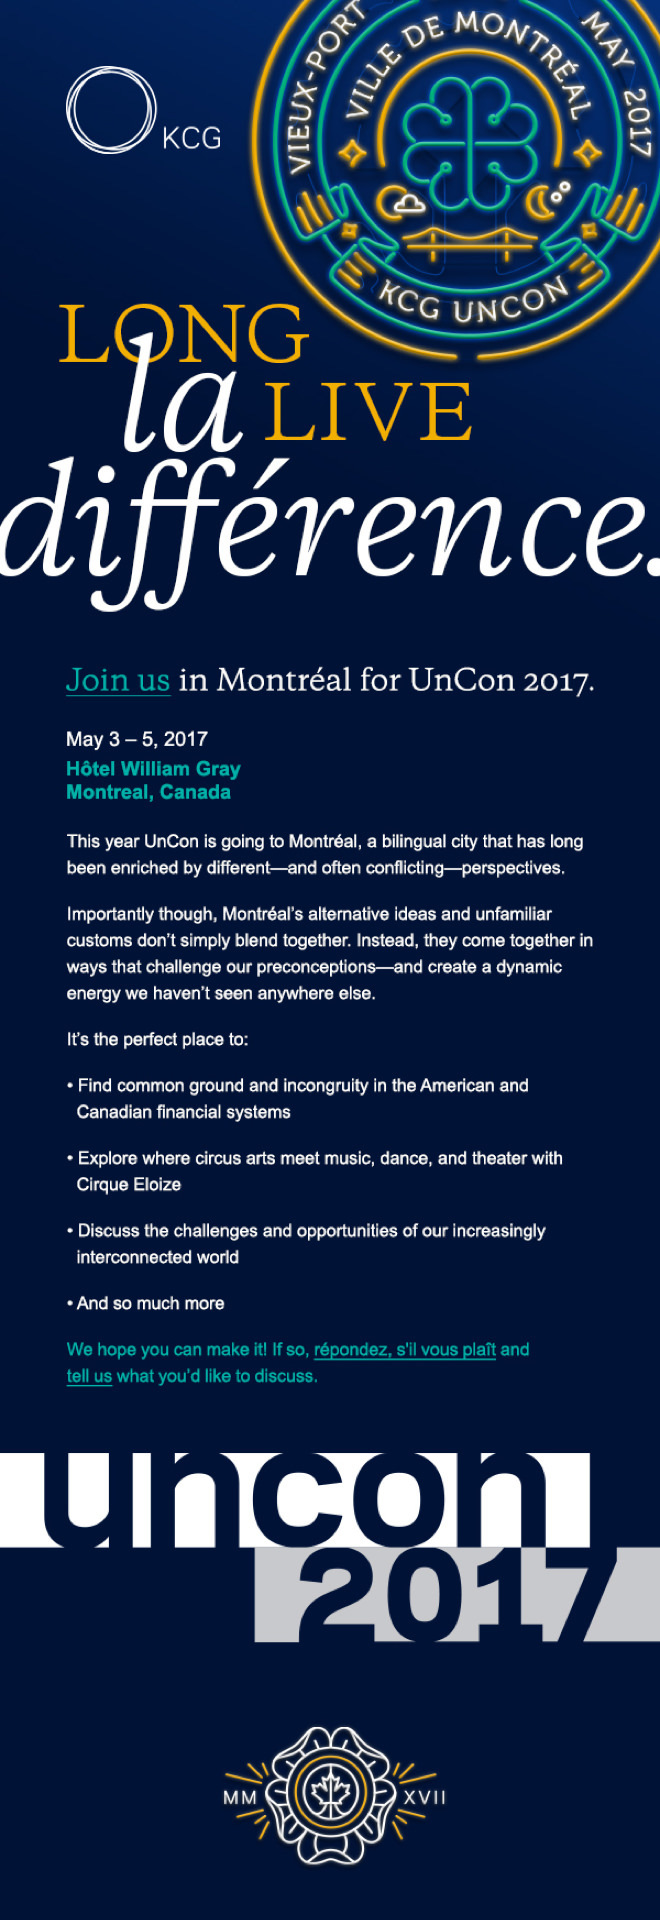 """Invitation to the 2017 KCG """"Uncon"""" client event in Montreal with the headline, """"Long live la différence."""""""